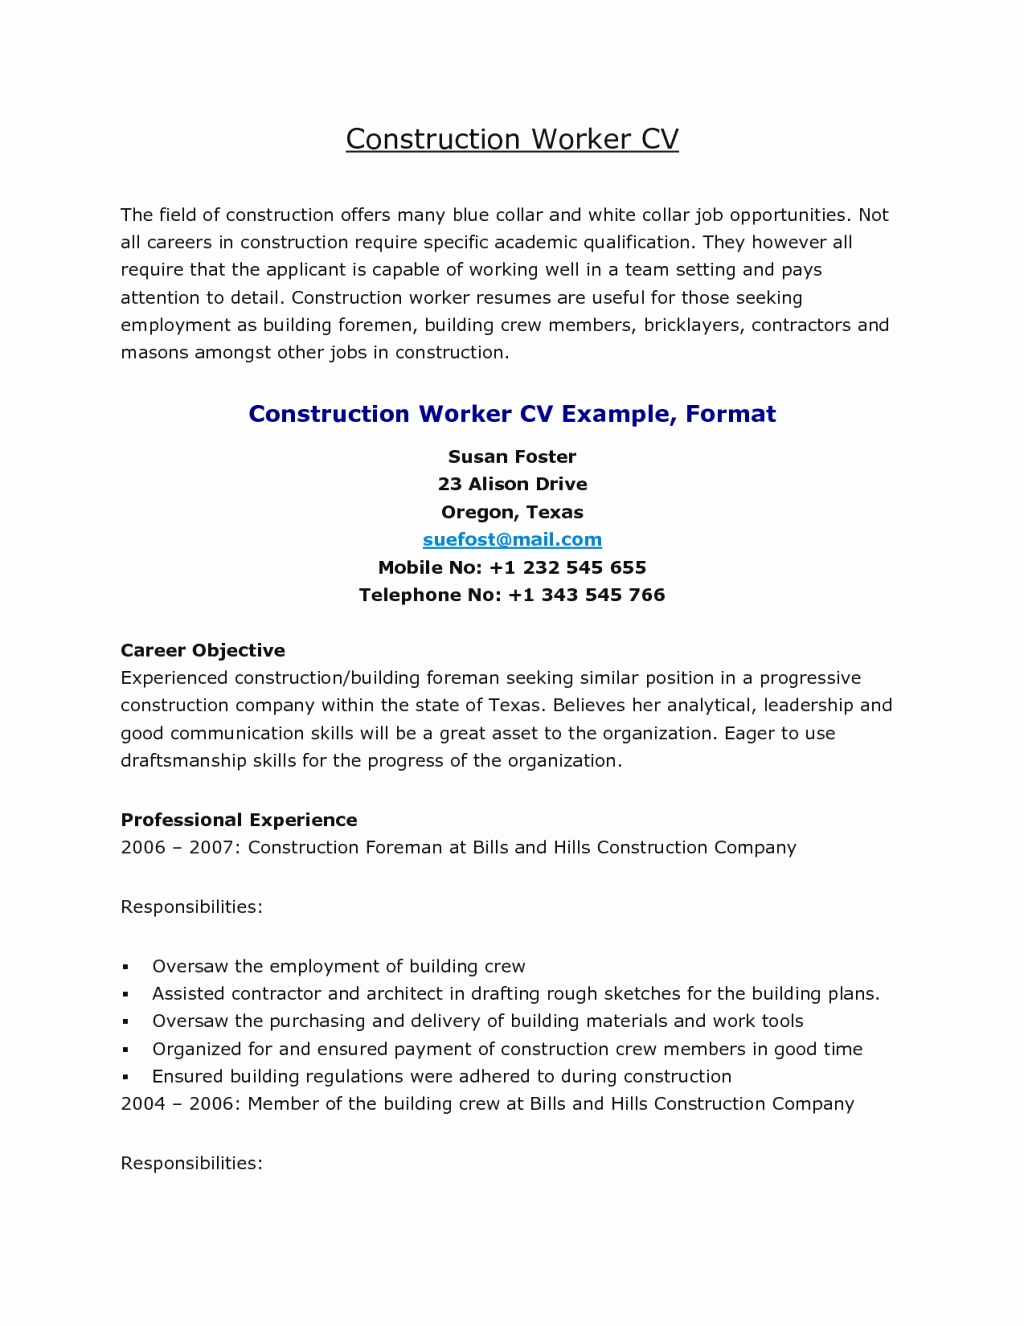 blue collar resume template example-Blue Collar Resume Templates Best Resume for Construction 19 Professional Worker Sample Construction 13-q